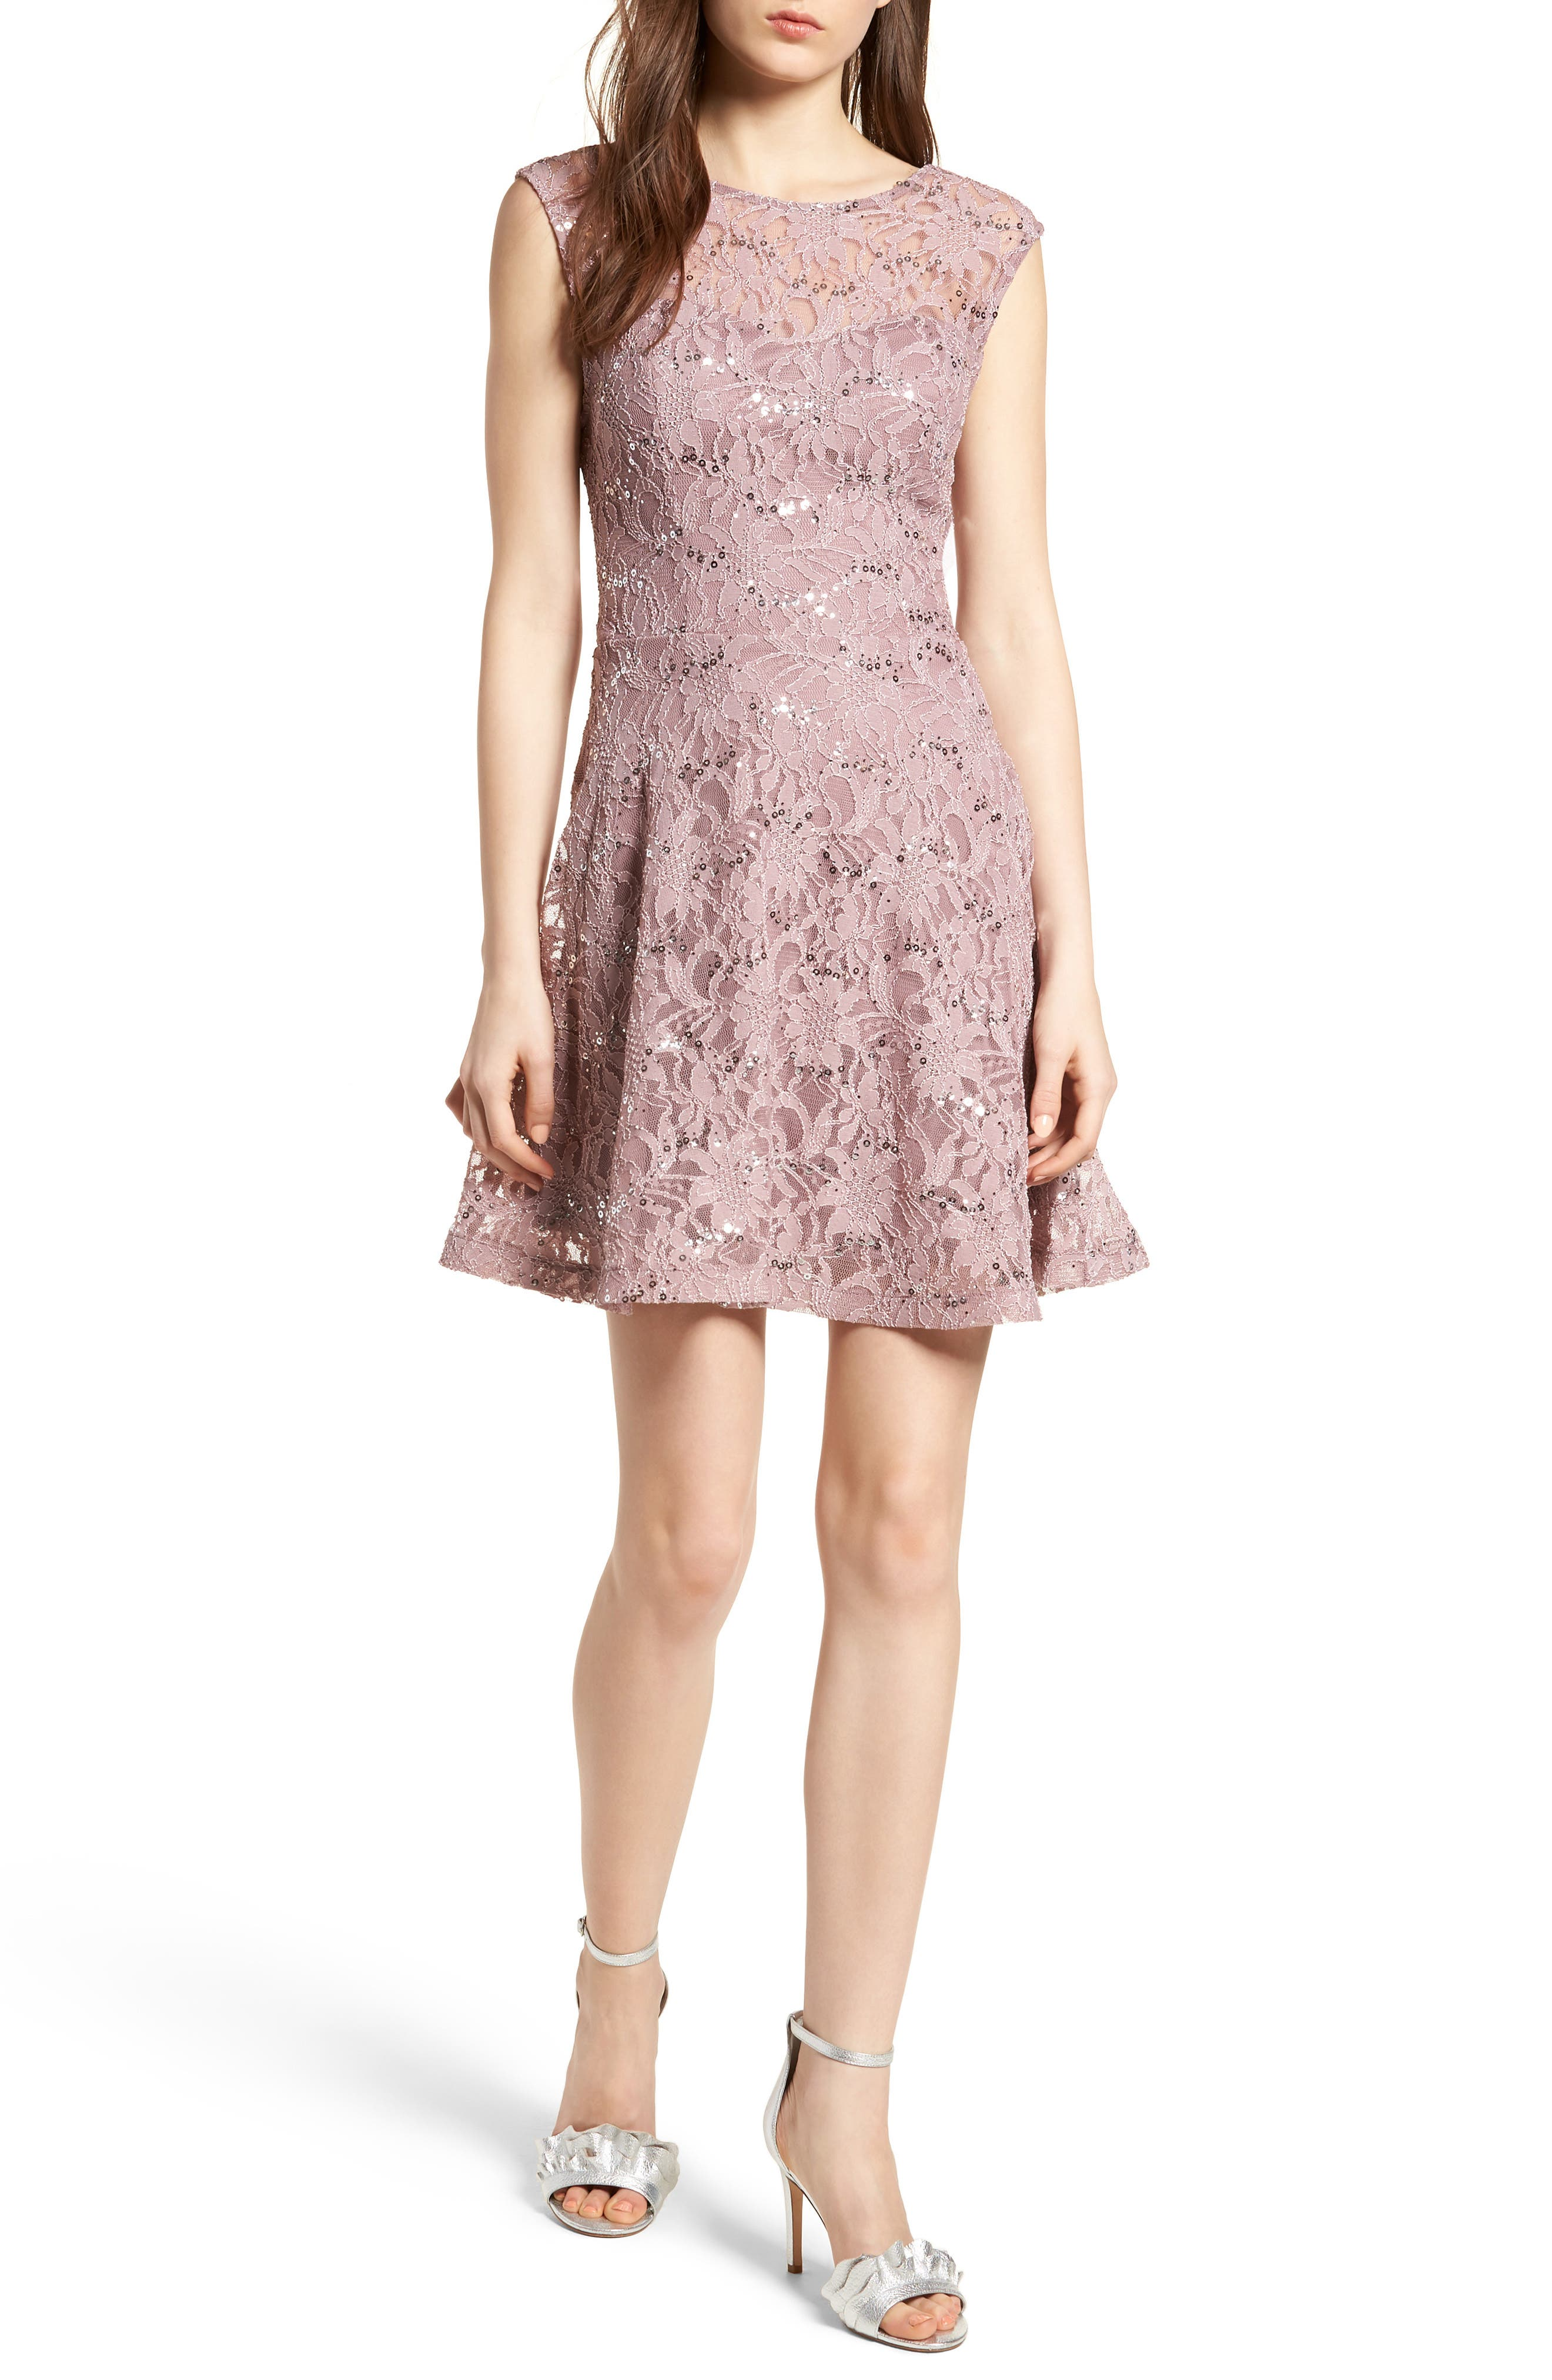 Alternate Image 1 Selected - Speechless Sequin Lace Fit & Flare Dress